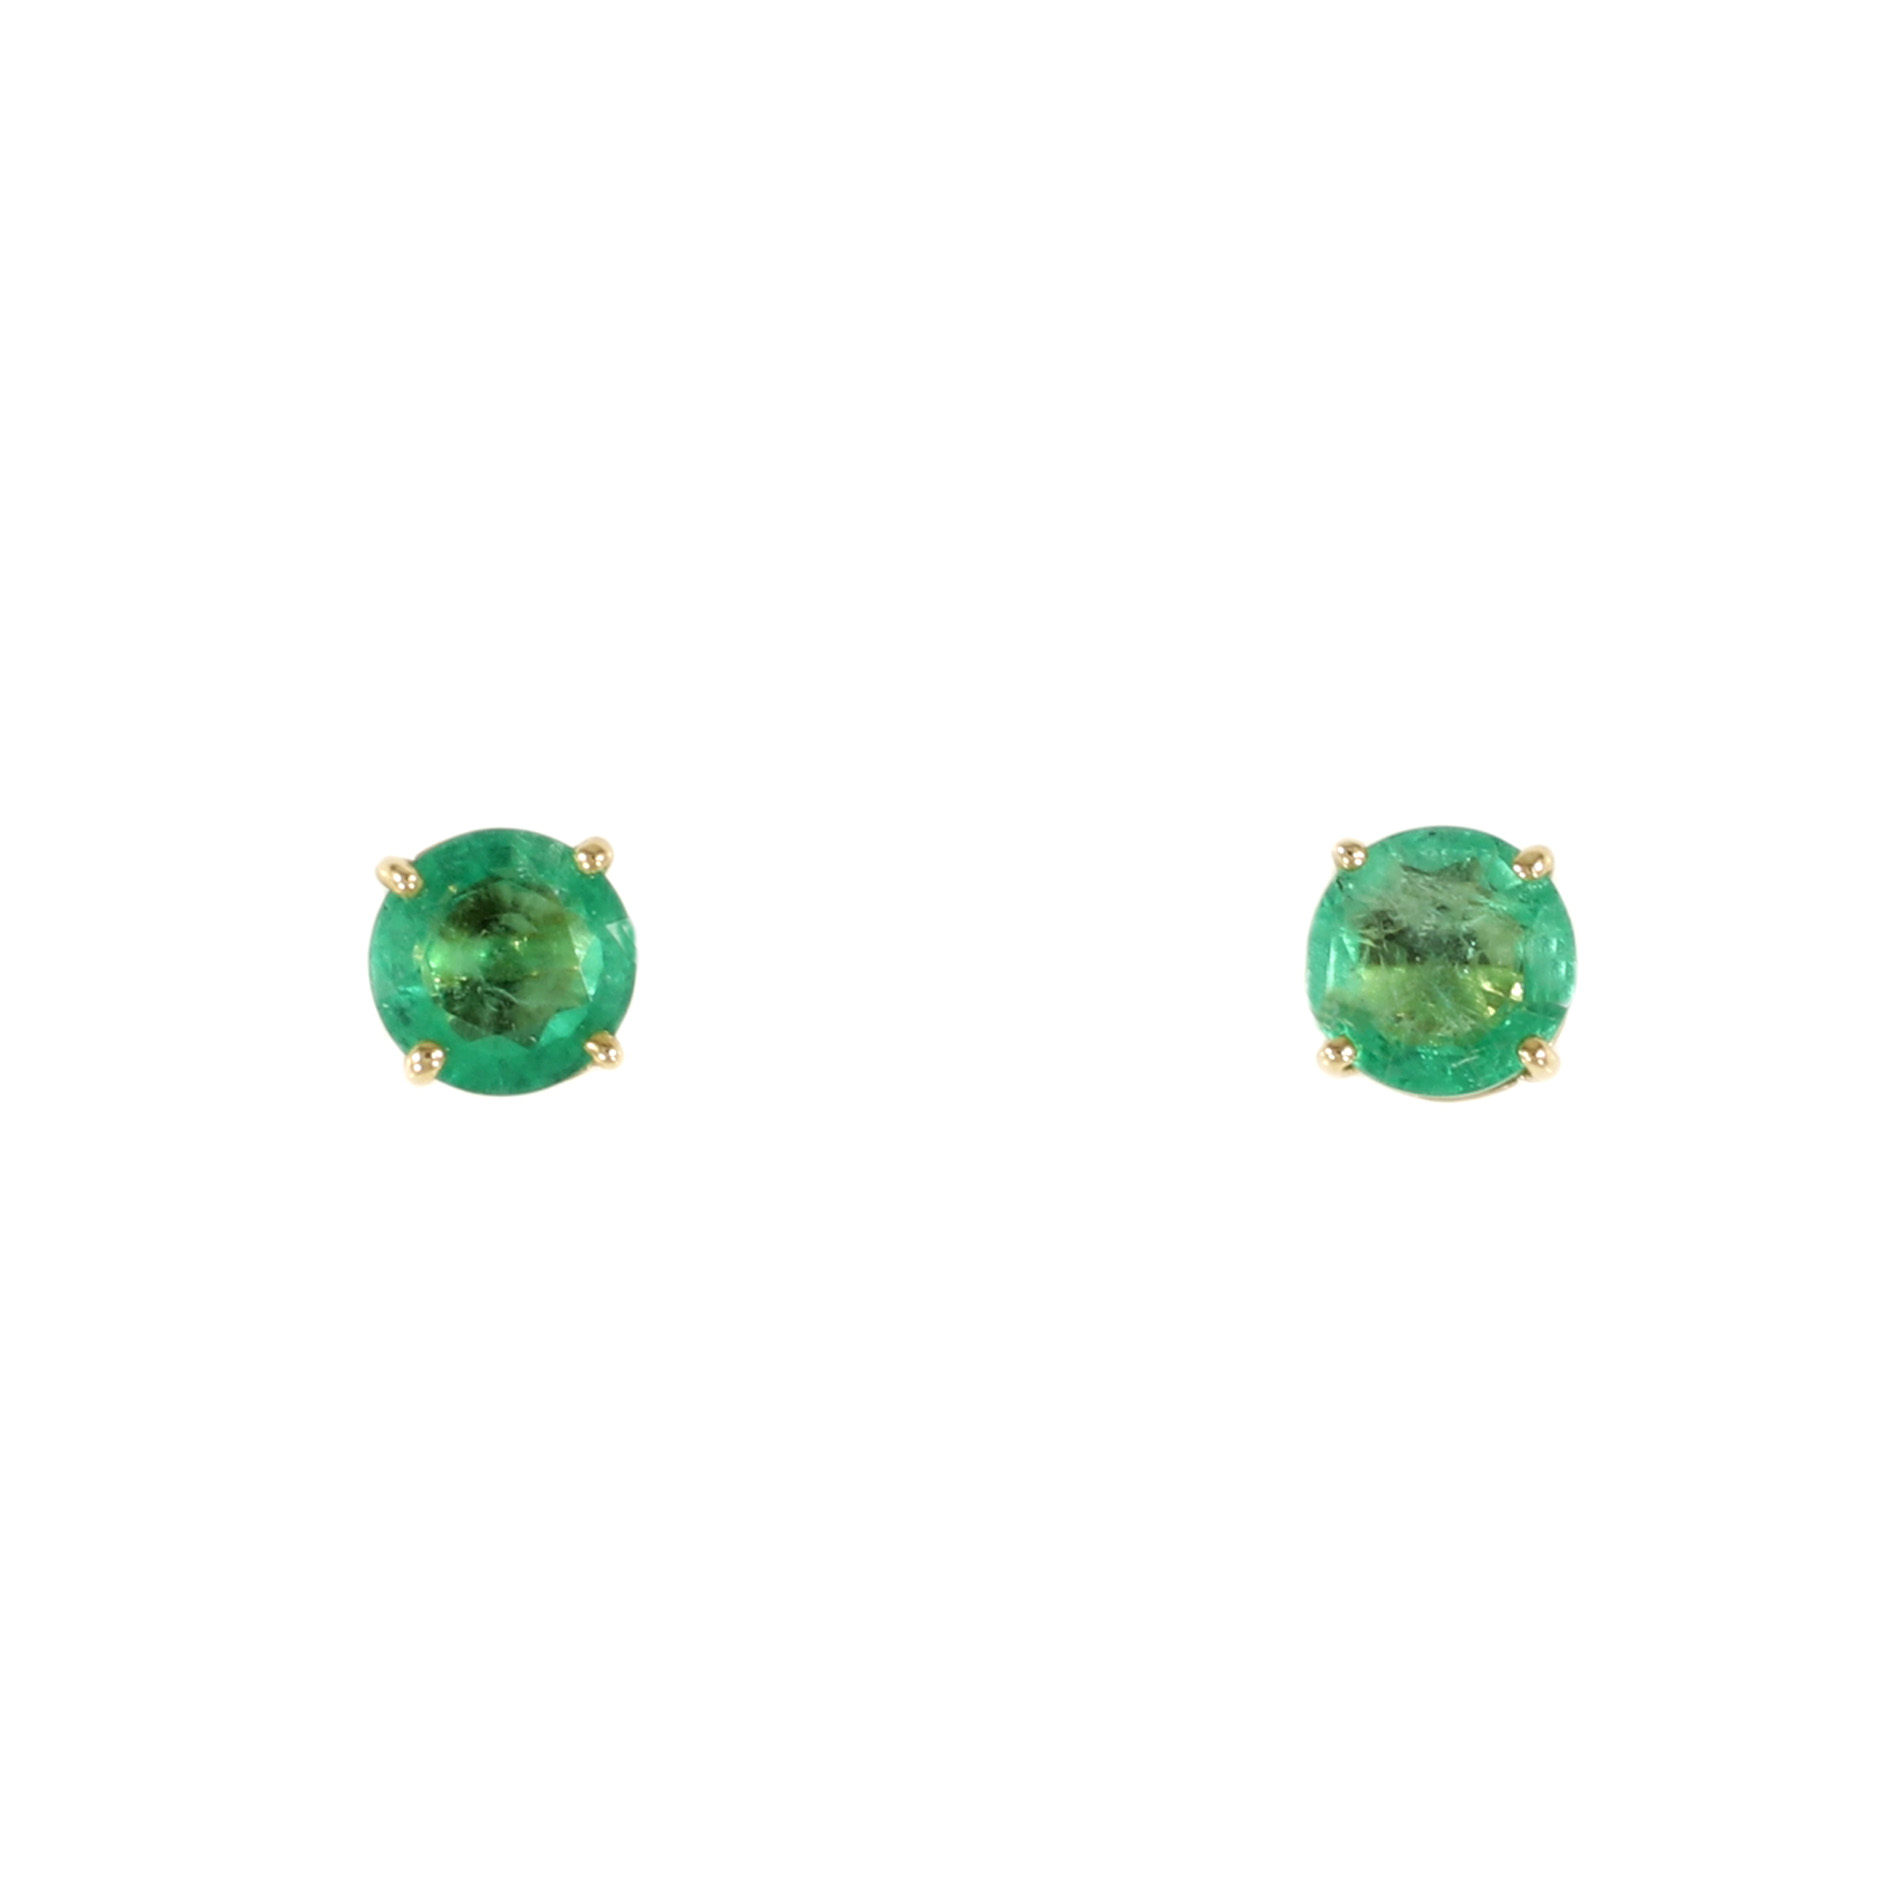 tone quartz two emerald wm products holidayone dsc ruby earrings red hydro natural and